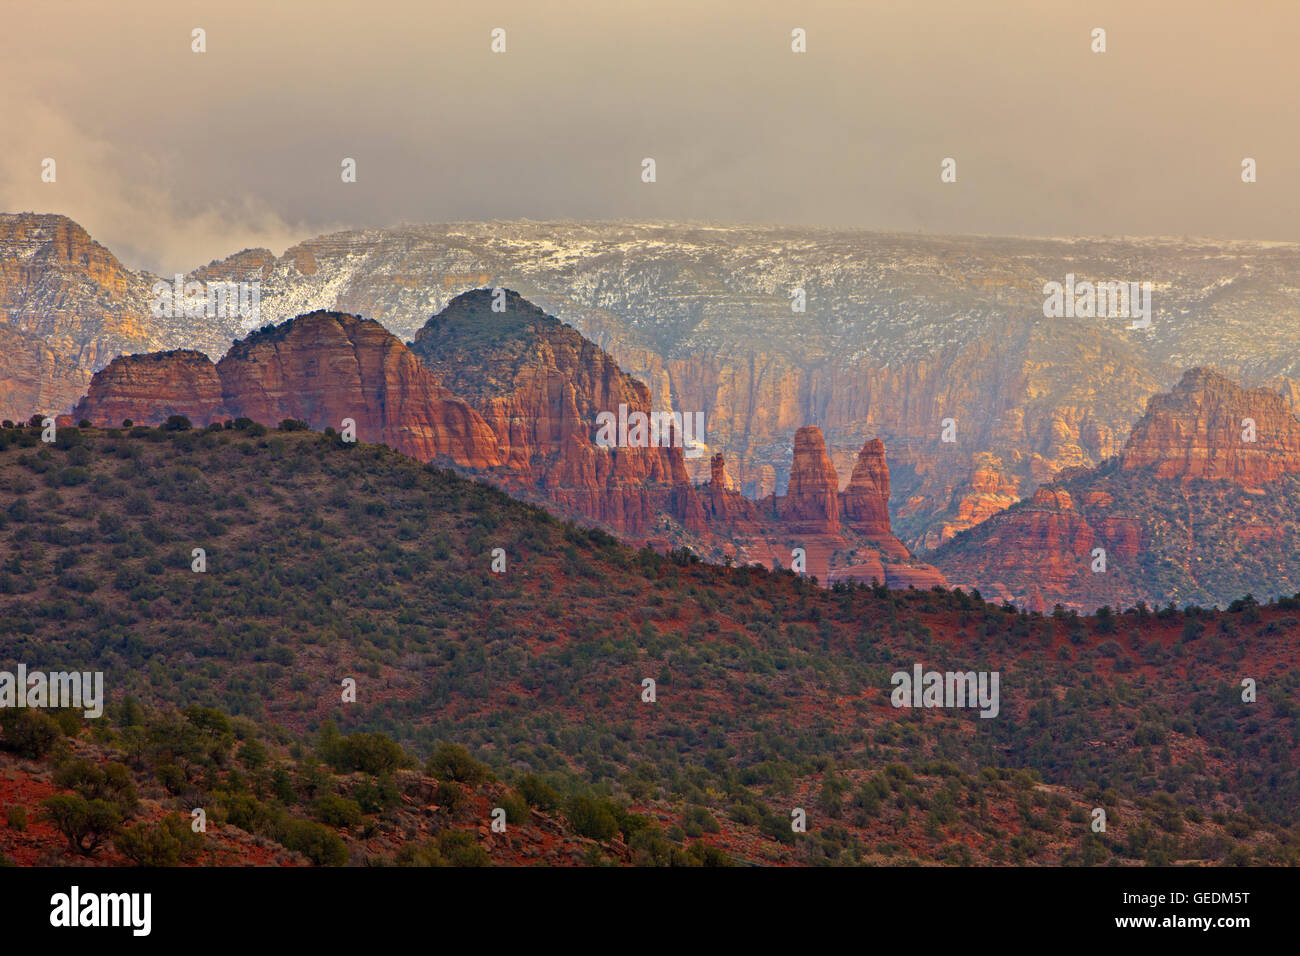 Geografia / viaggi, USA, Arizona, Sedona, , No-Exclusive-uso Immagini Stock